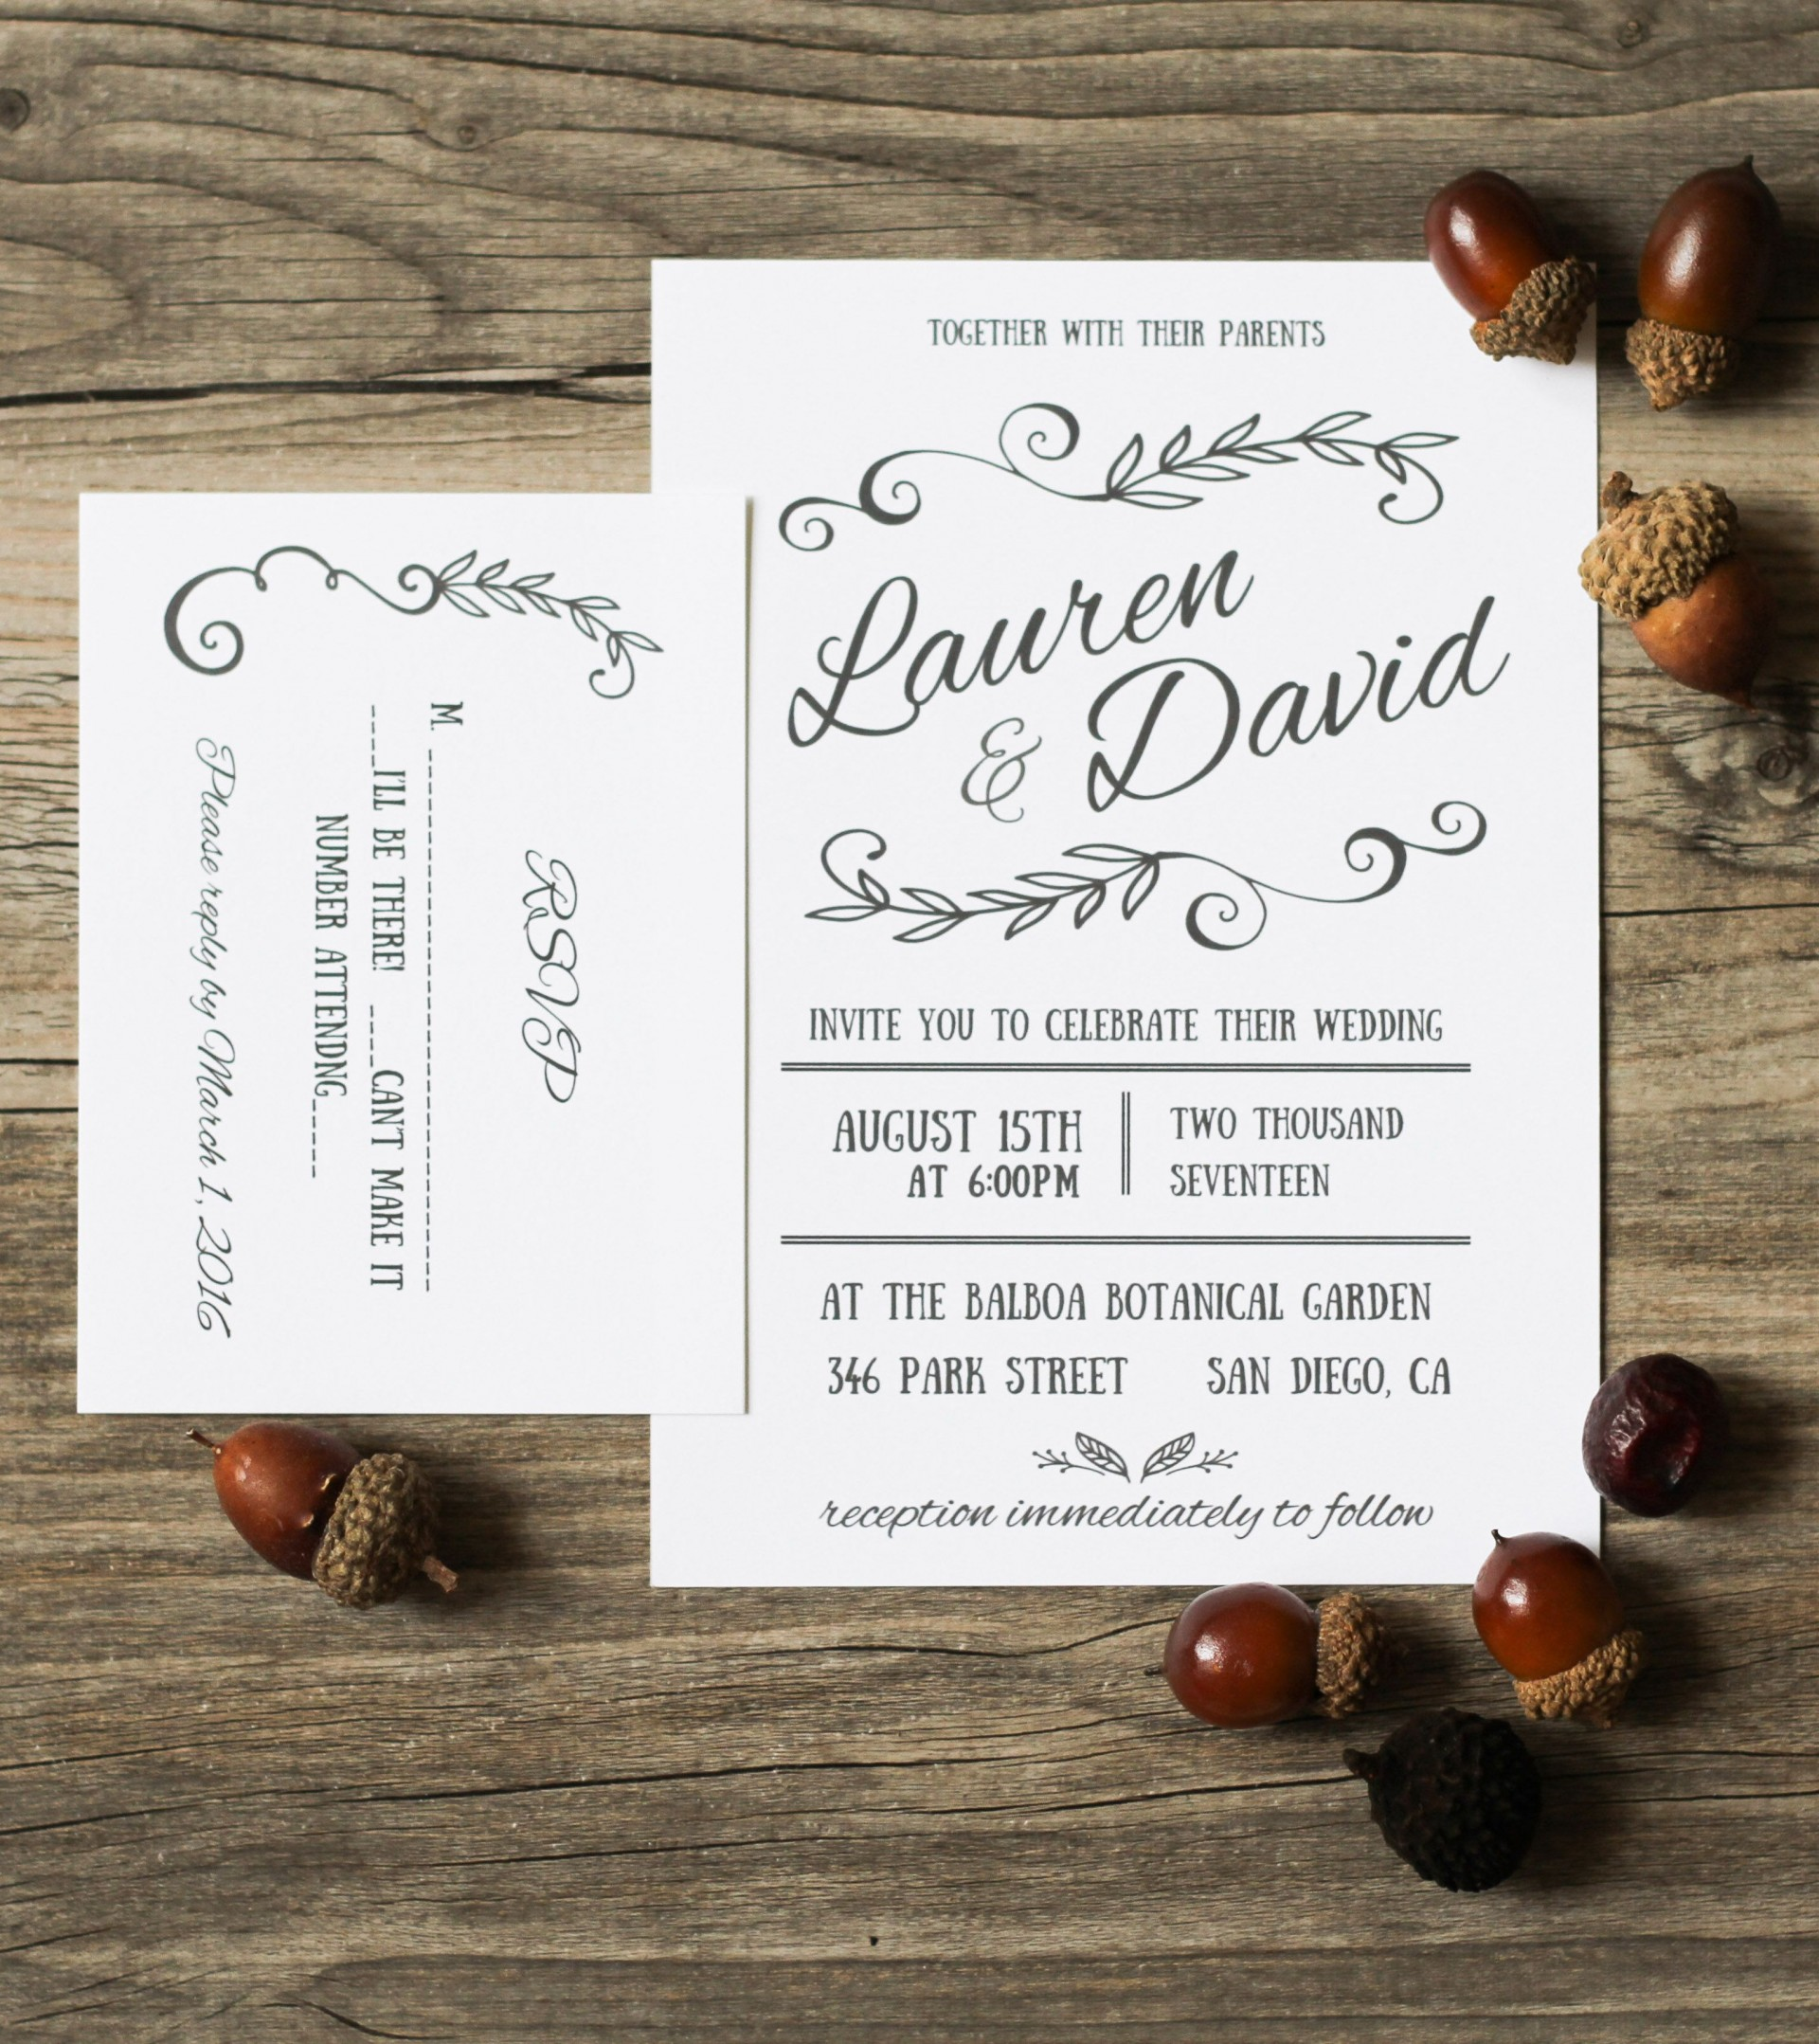 005 Remarkable Microsoft Word Invitation Template High Resolution  Templates Baby Shower Free Graduation Announcement For Wedding1920